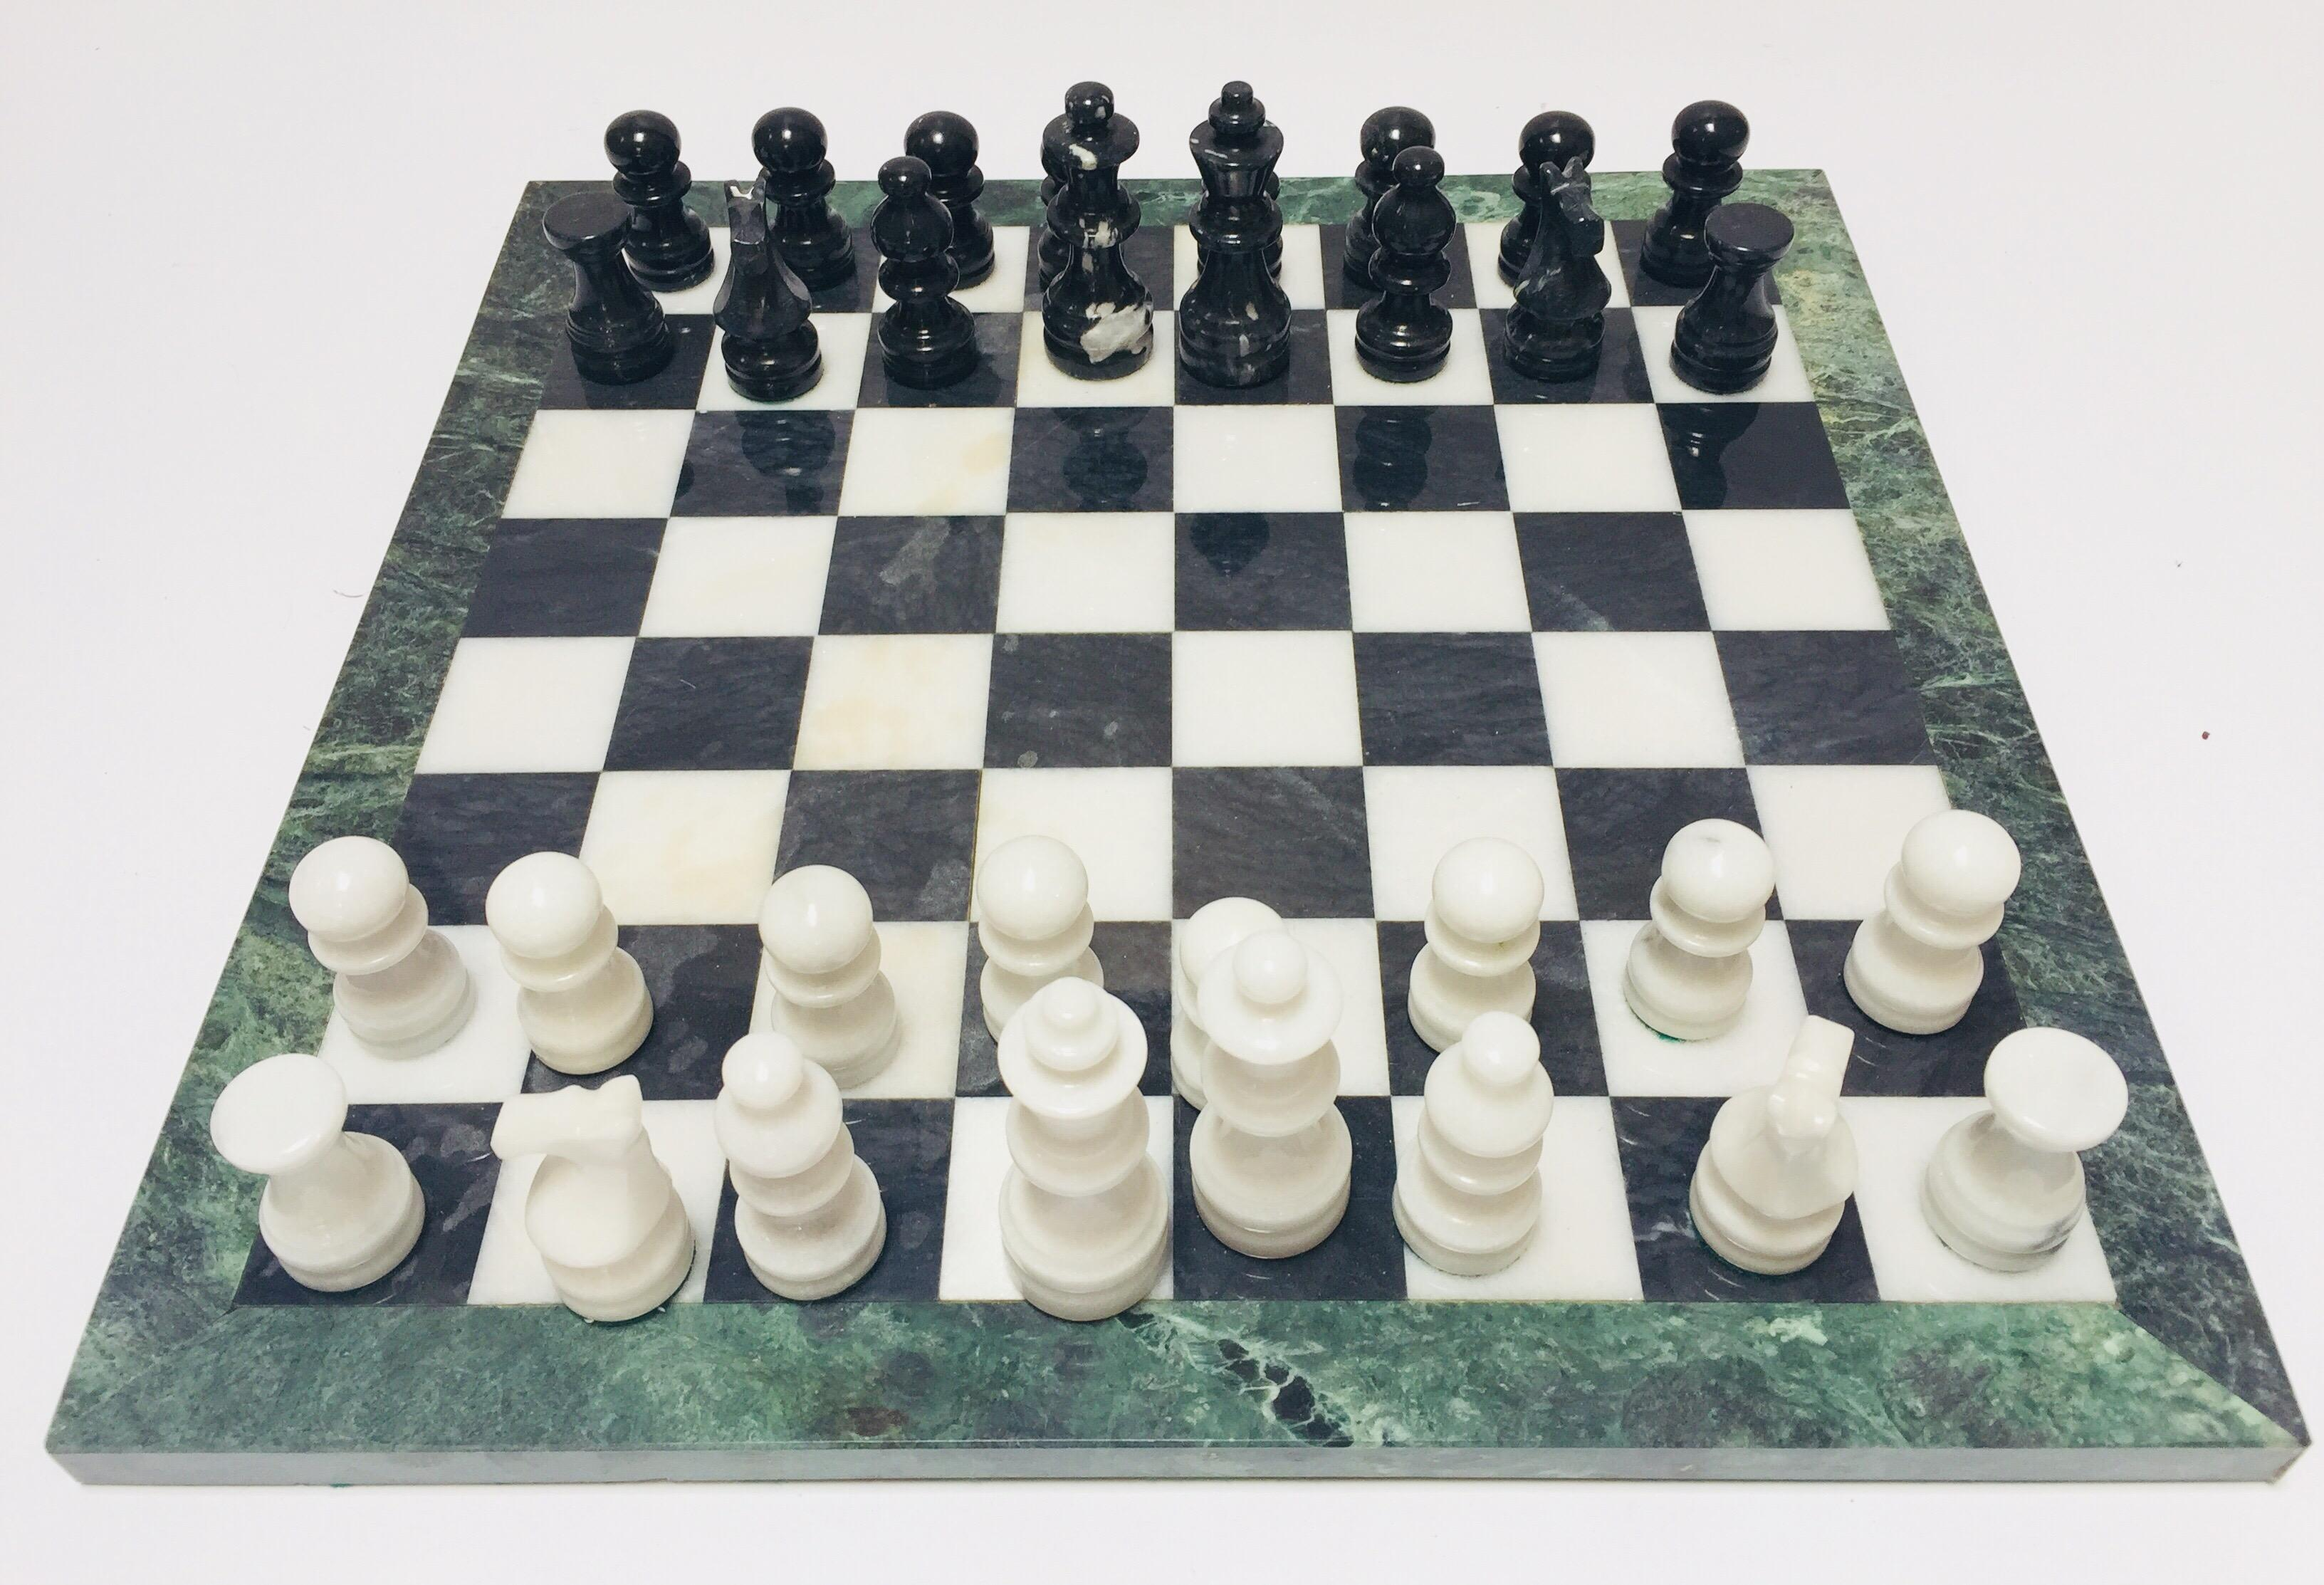 Marble Stone Chess Board and Pieces Set Rajasthan Art Dimension 20 x 20 cm